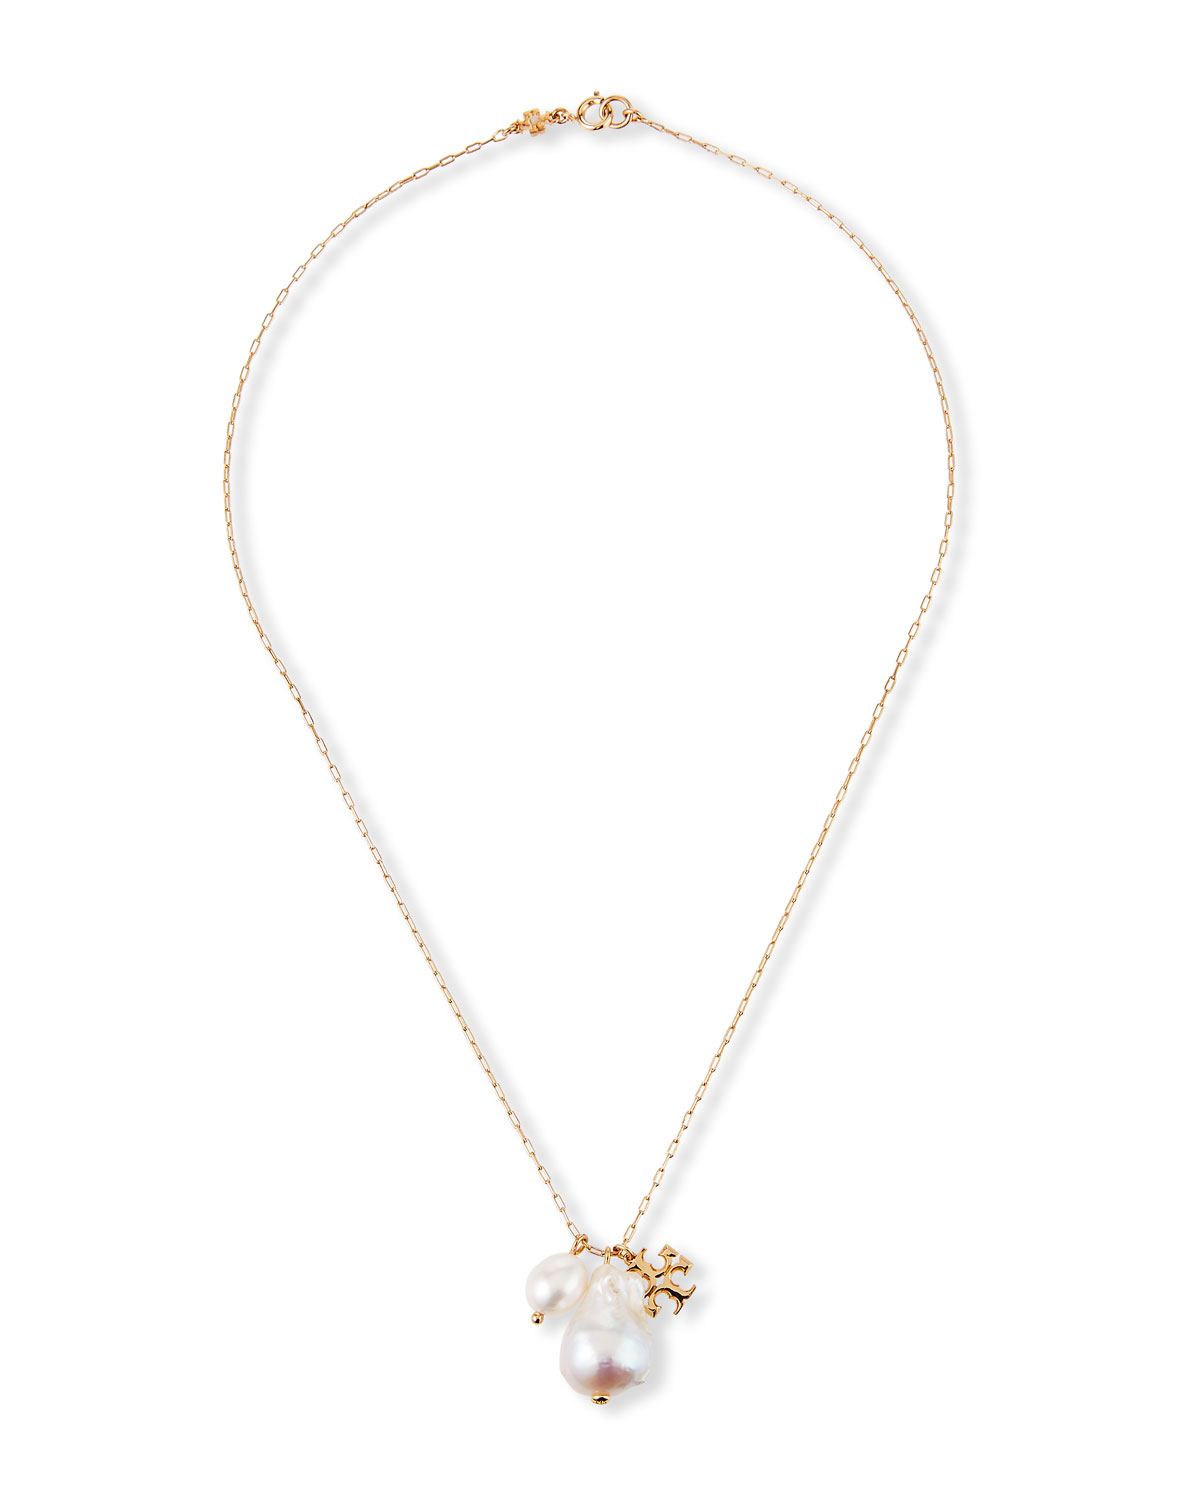 Tory Burch Kira Pearl Charm Necklace